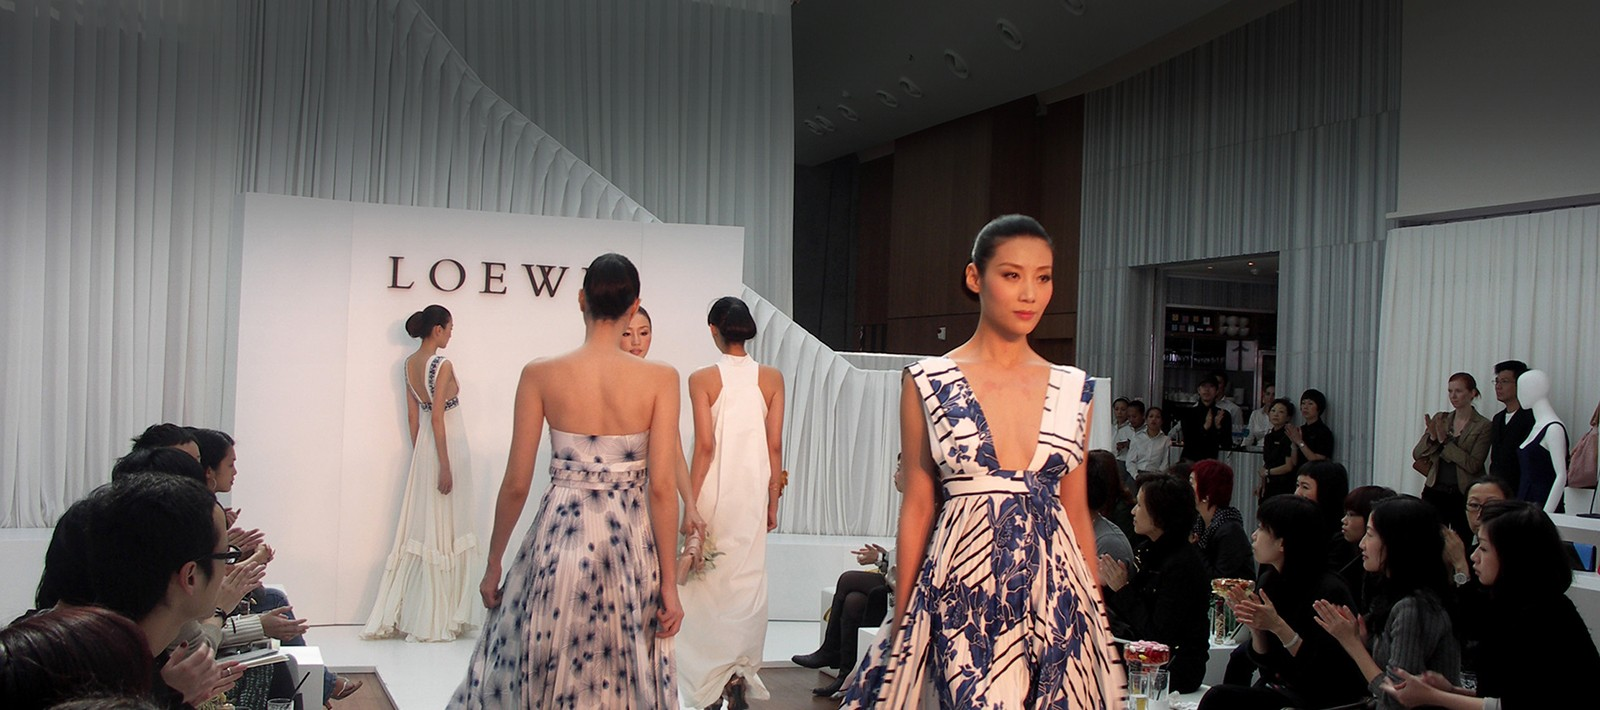 Fashion exhibition design for Loewe